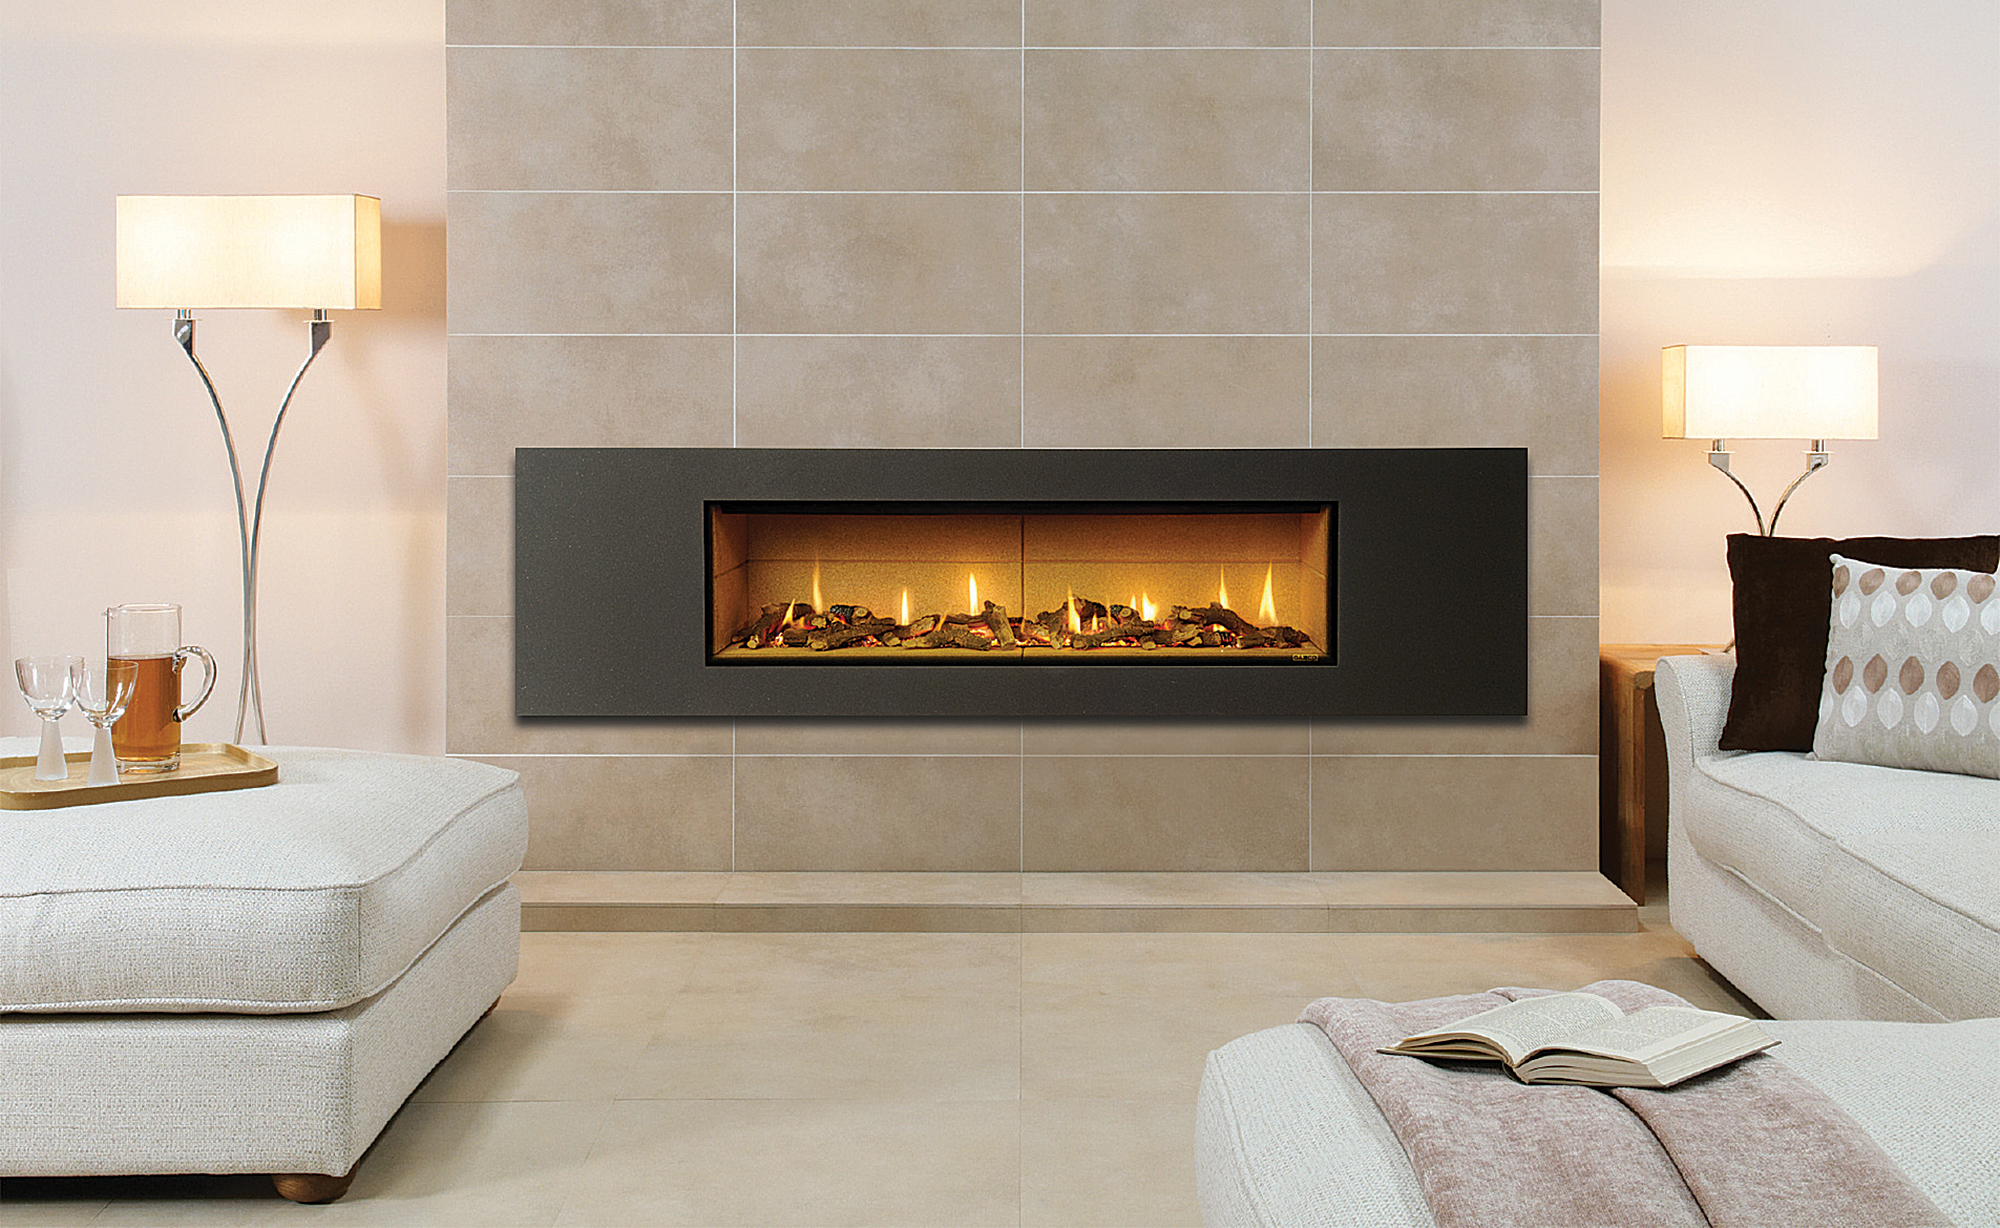 gazco studio balanced flue gas fire the fireplace archipro